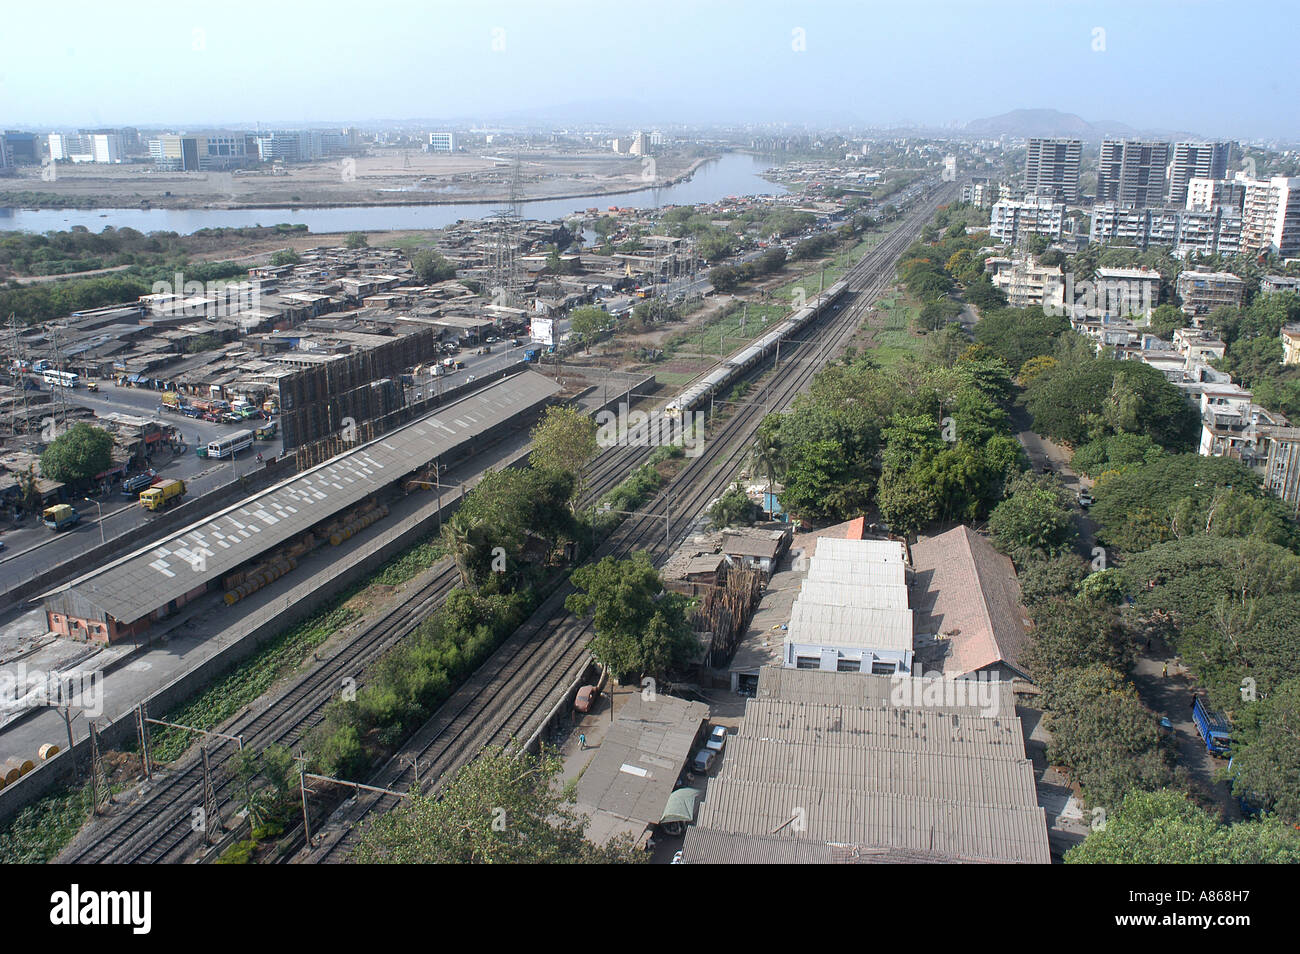 MPD77545 Aerial View Of Sion Kurla Railway Lines With